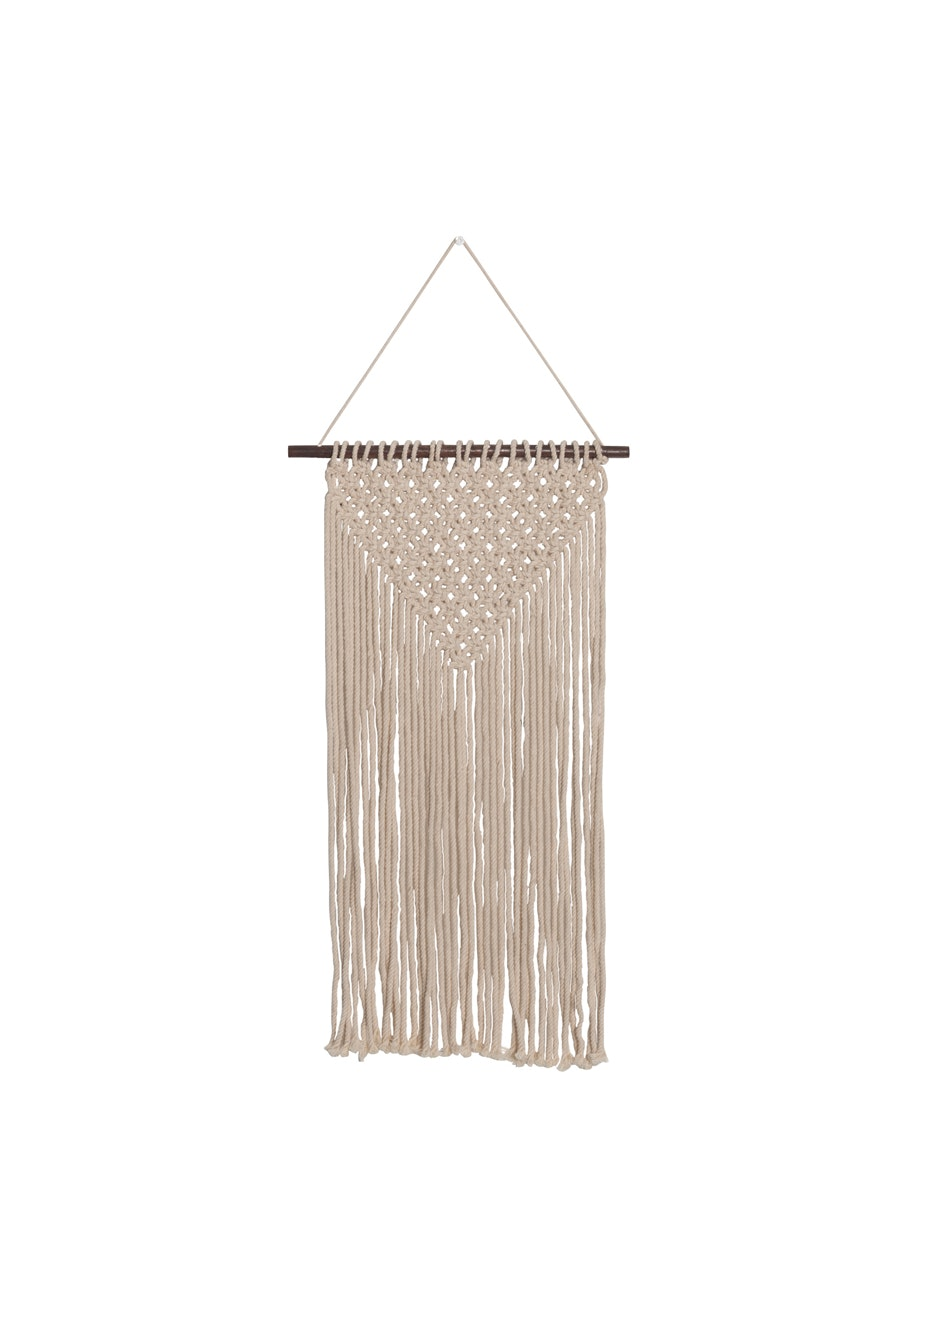 General Eclectic - Macrame Wall Hanging Small